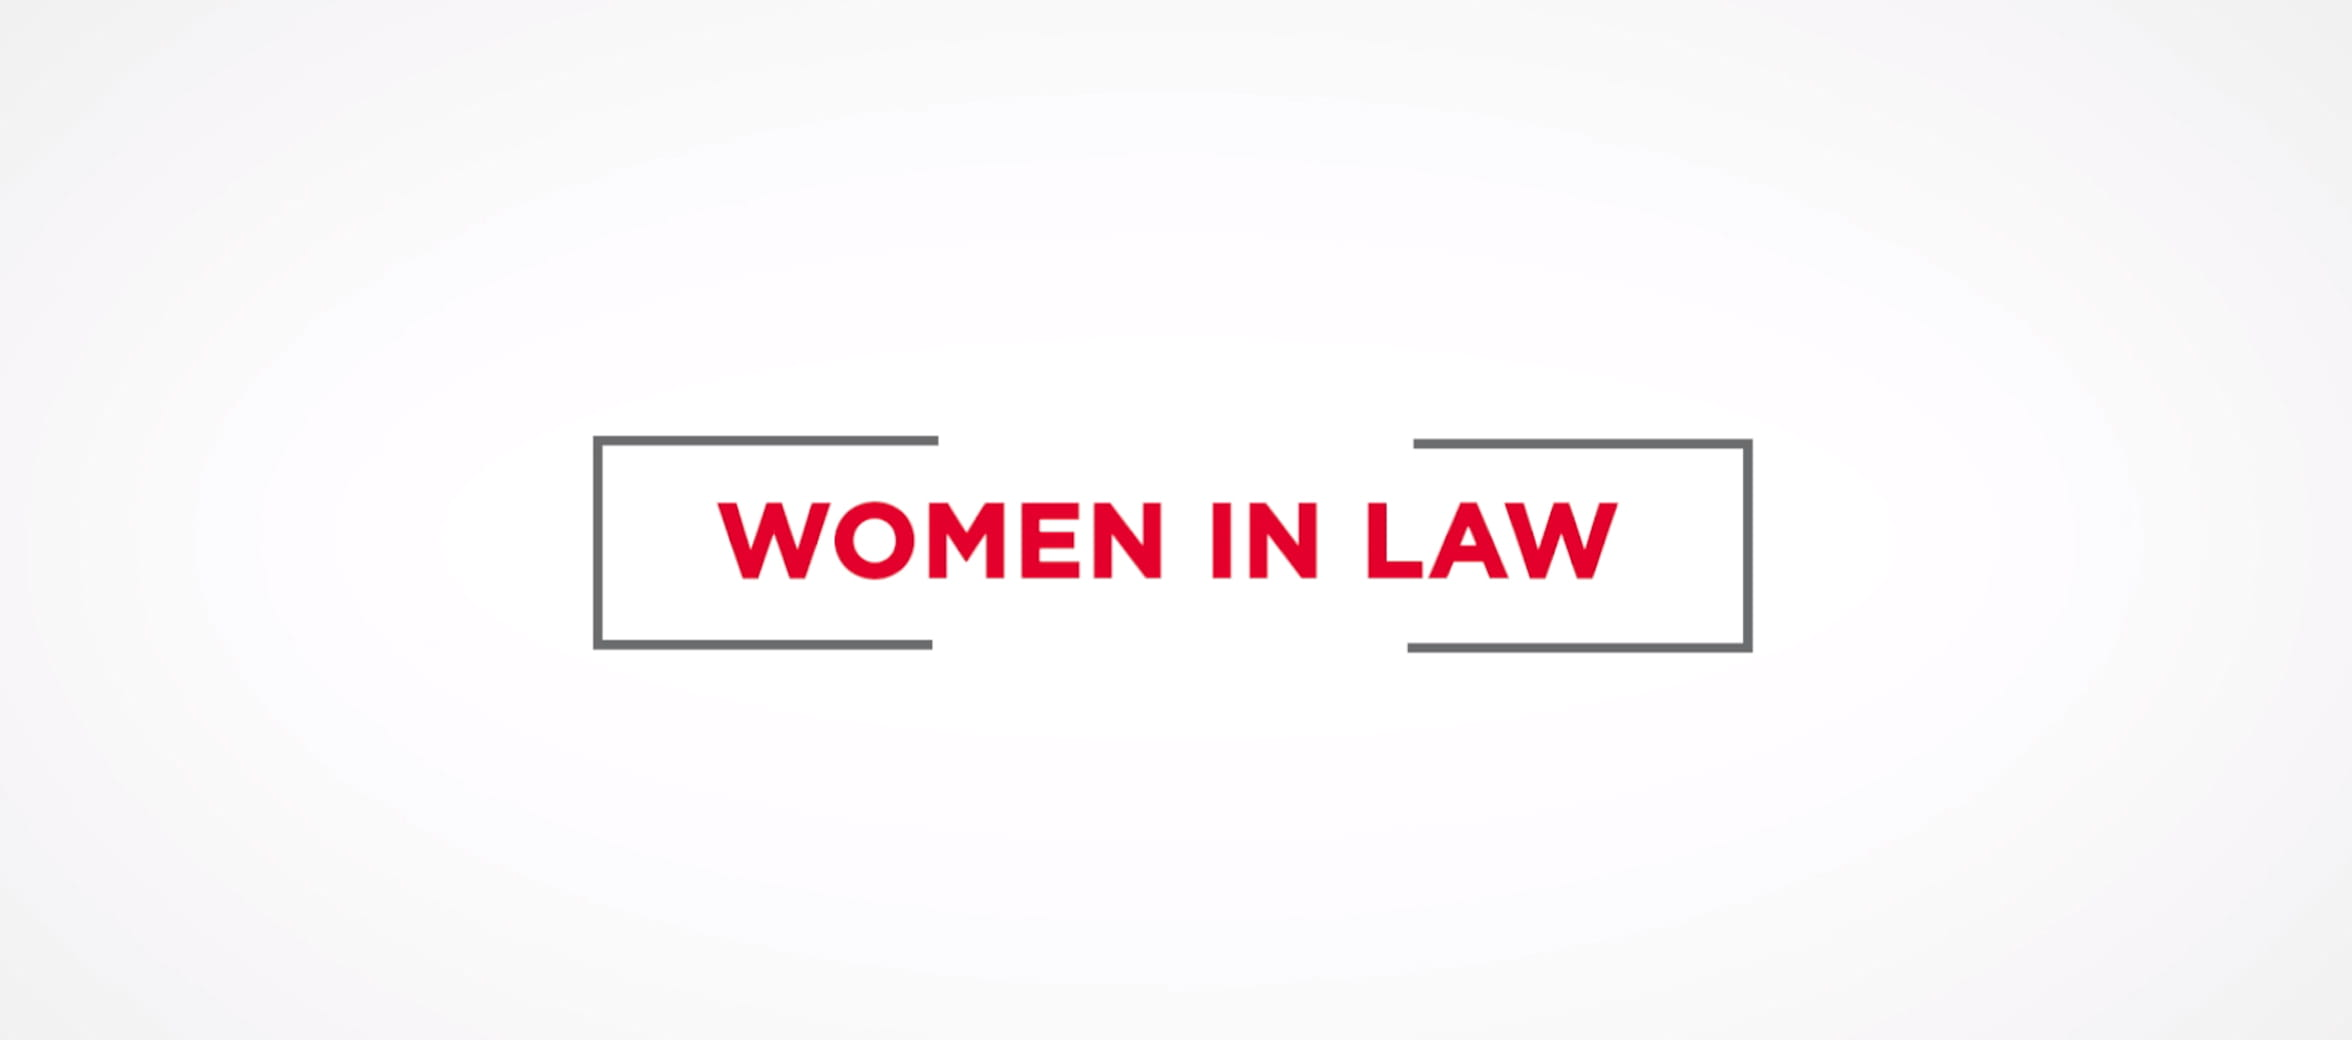 women in law video thumbnail